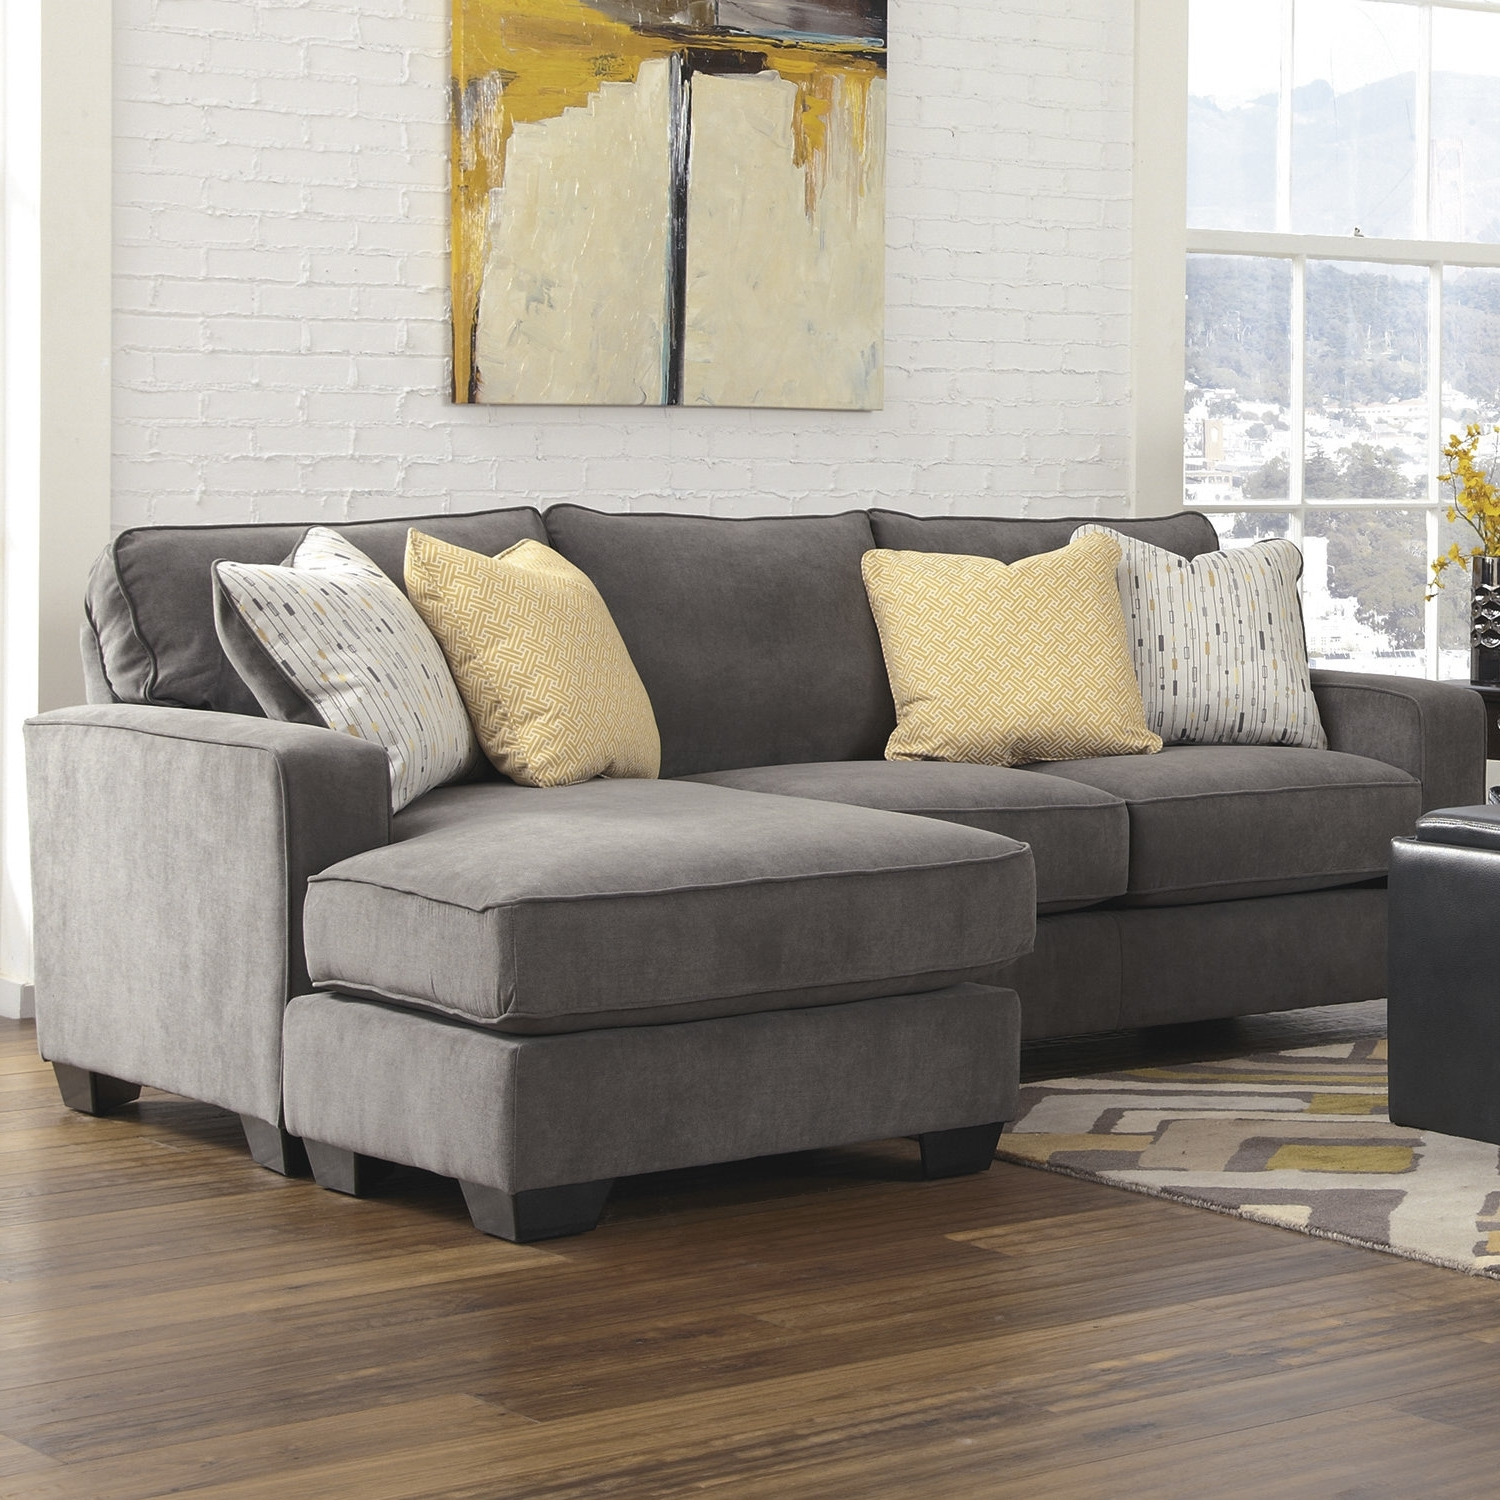 80X80 Sectional Sofas In Most Recently Released Sectional Sofas (Gallery 18 of 20)